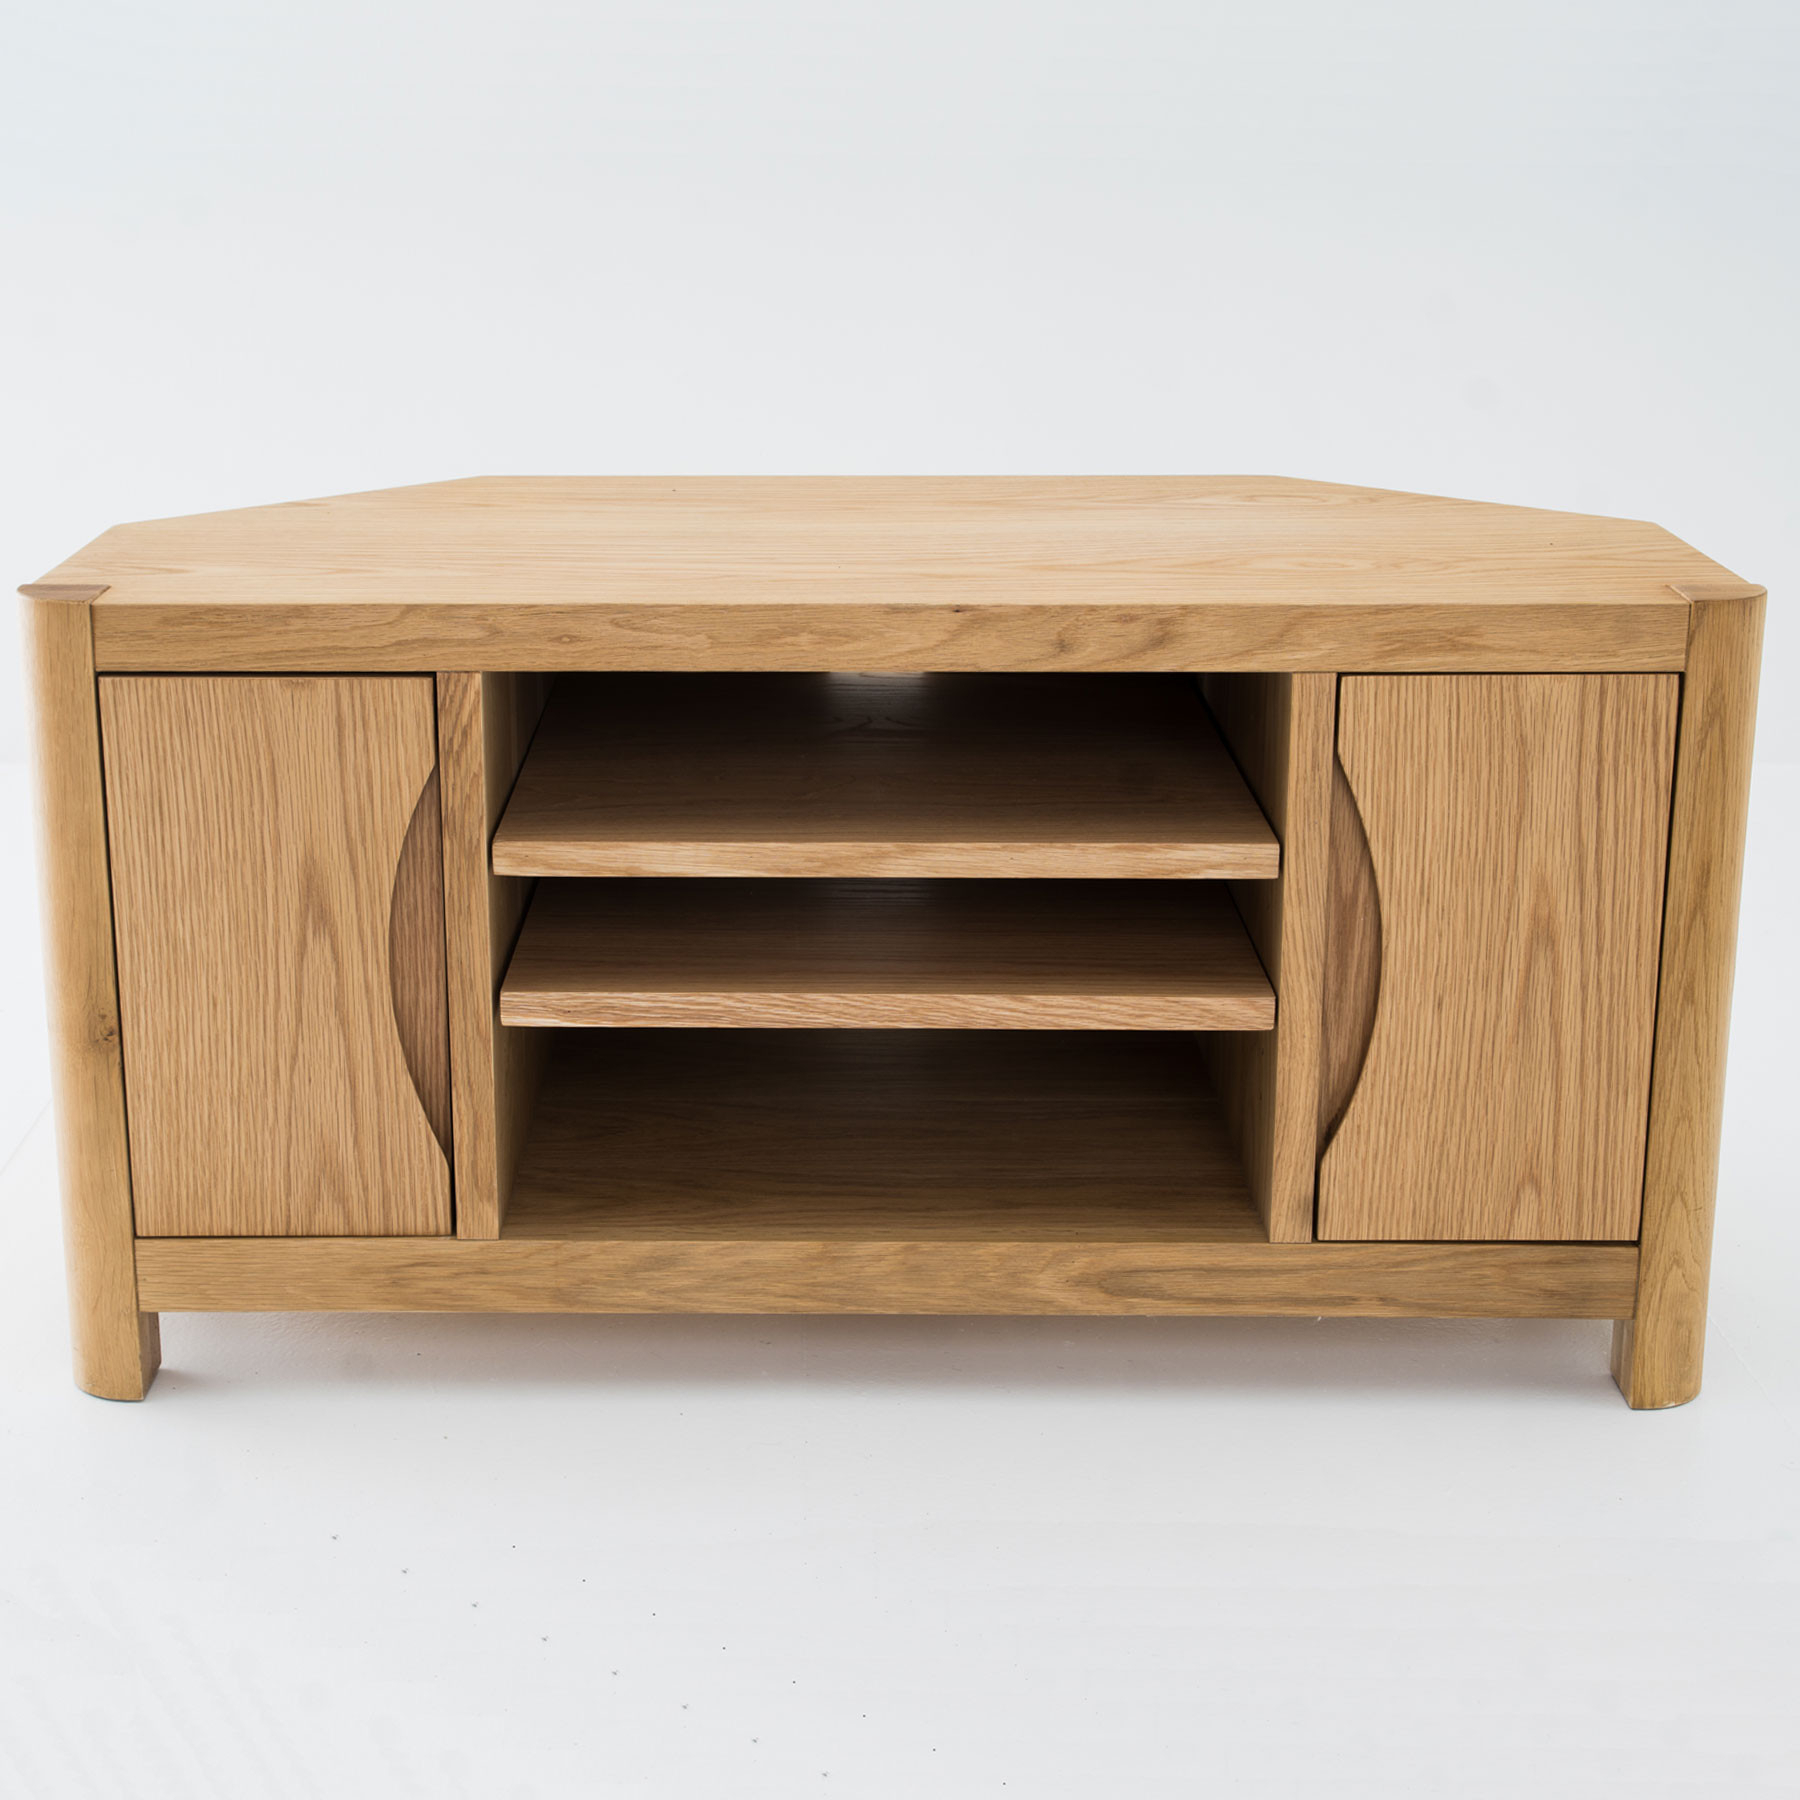 Preferred Golden Oak Tv Stand 55 Inch Corner Cabinet With Doors Tall Within Light Oak Tv Corner Units (View 15 of 20)